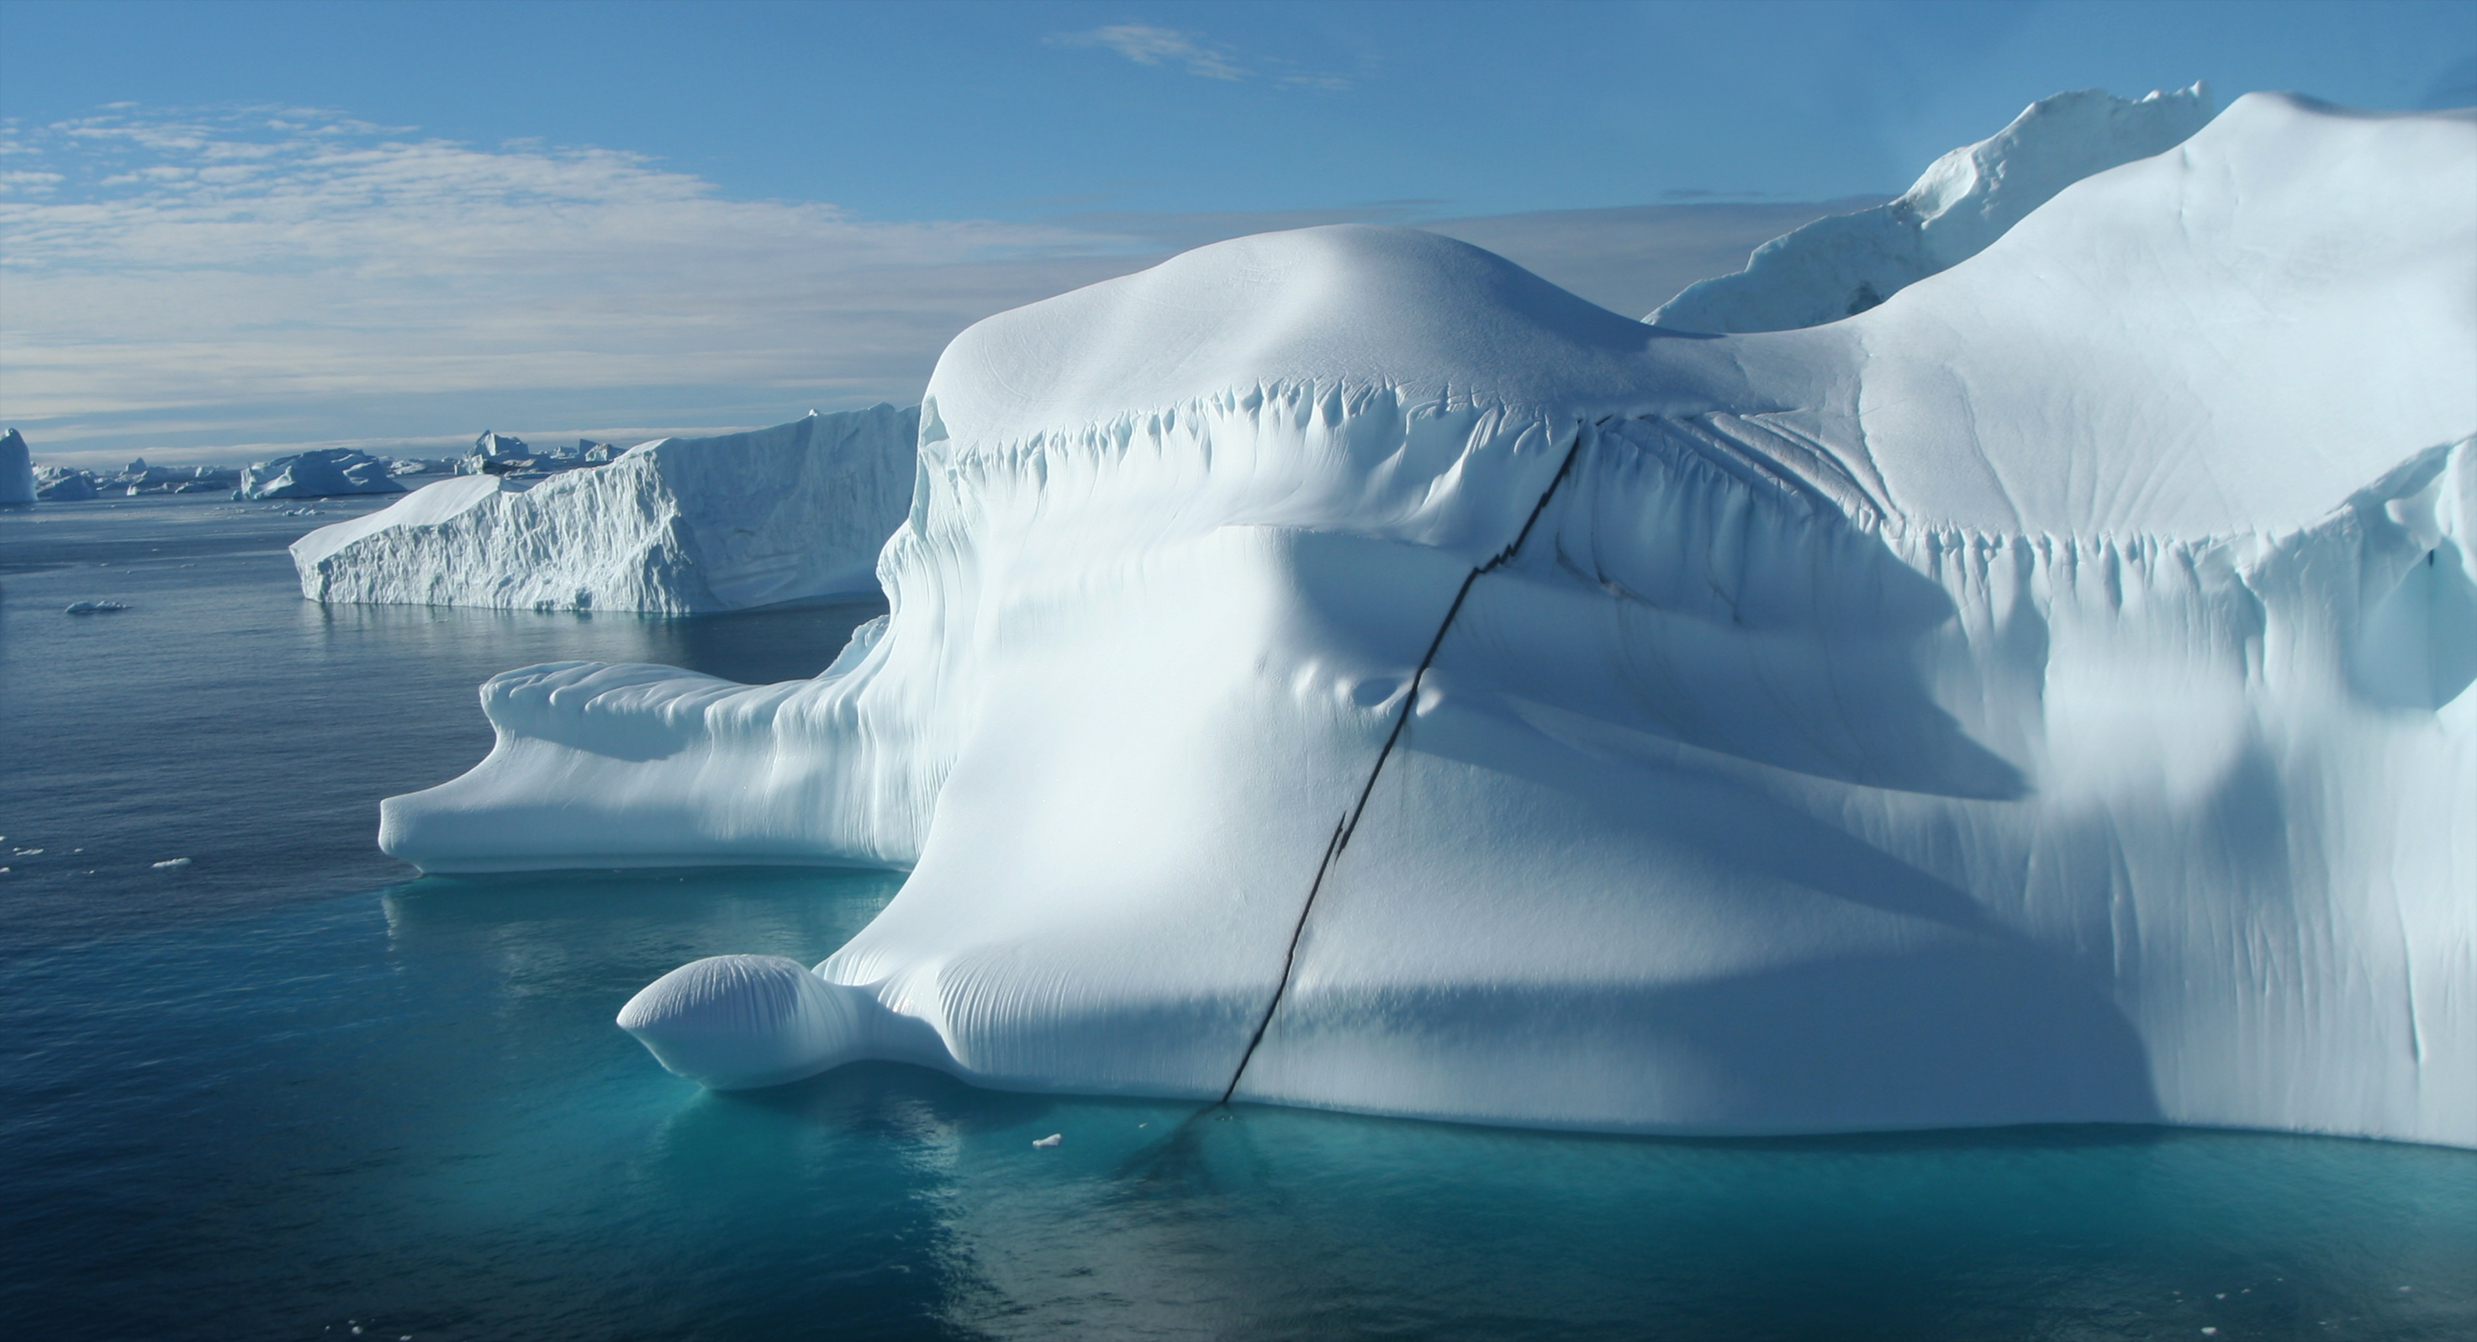 how work helicopter with File Close Up Of Iceberg At Cape York Taken From Helicopter on File G UHIH   72 21509 129 Bell UH 1H Iroquois  205   cn 13208  US Army   9436432746 besides 478155685409346616 also File boscastle raf seaking in addition 8022105560125575 further Fantasy 575.